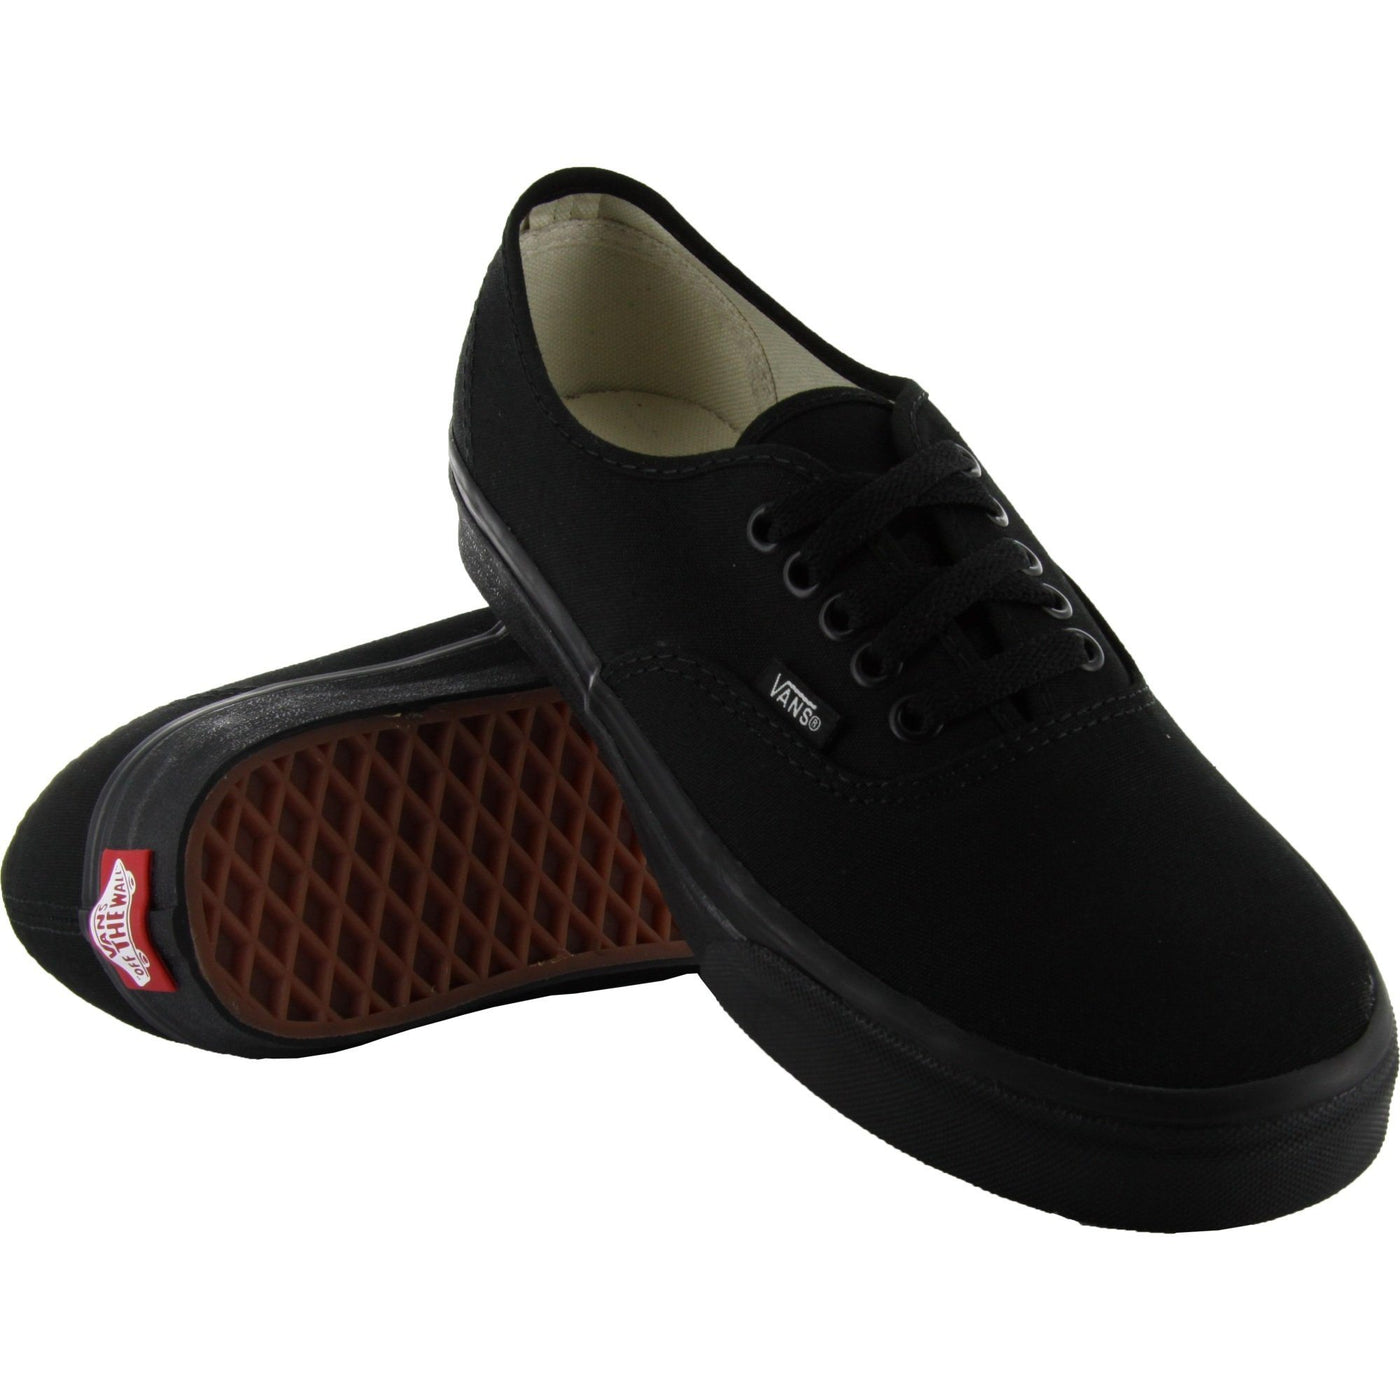 ... VANS AUTHENTIC BLACK SHOES - BOTH SHOES VIEW 44c83a39b